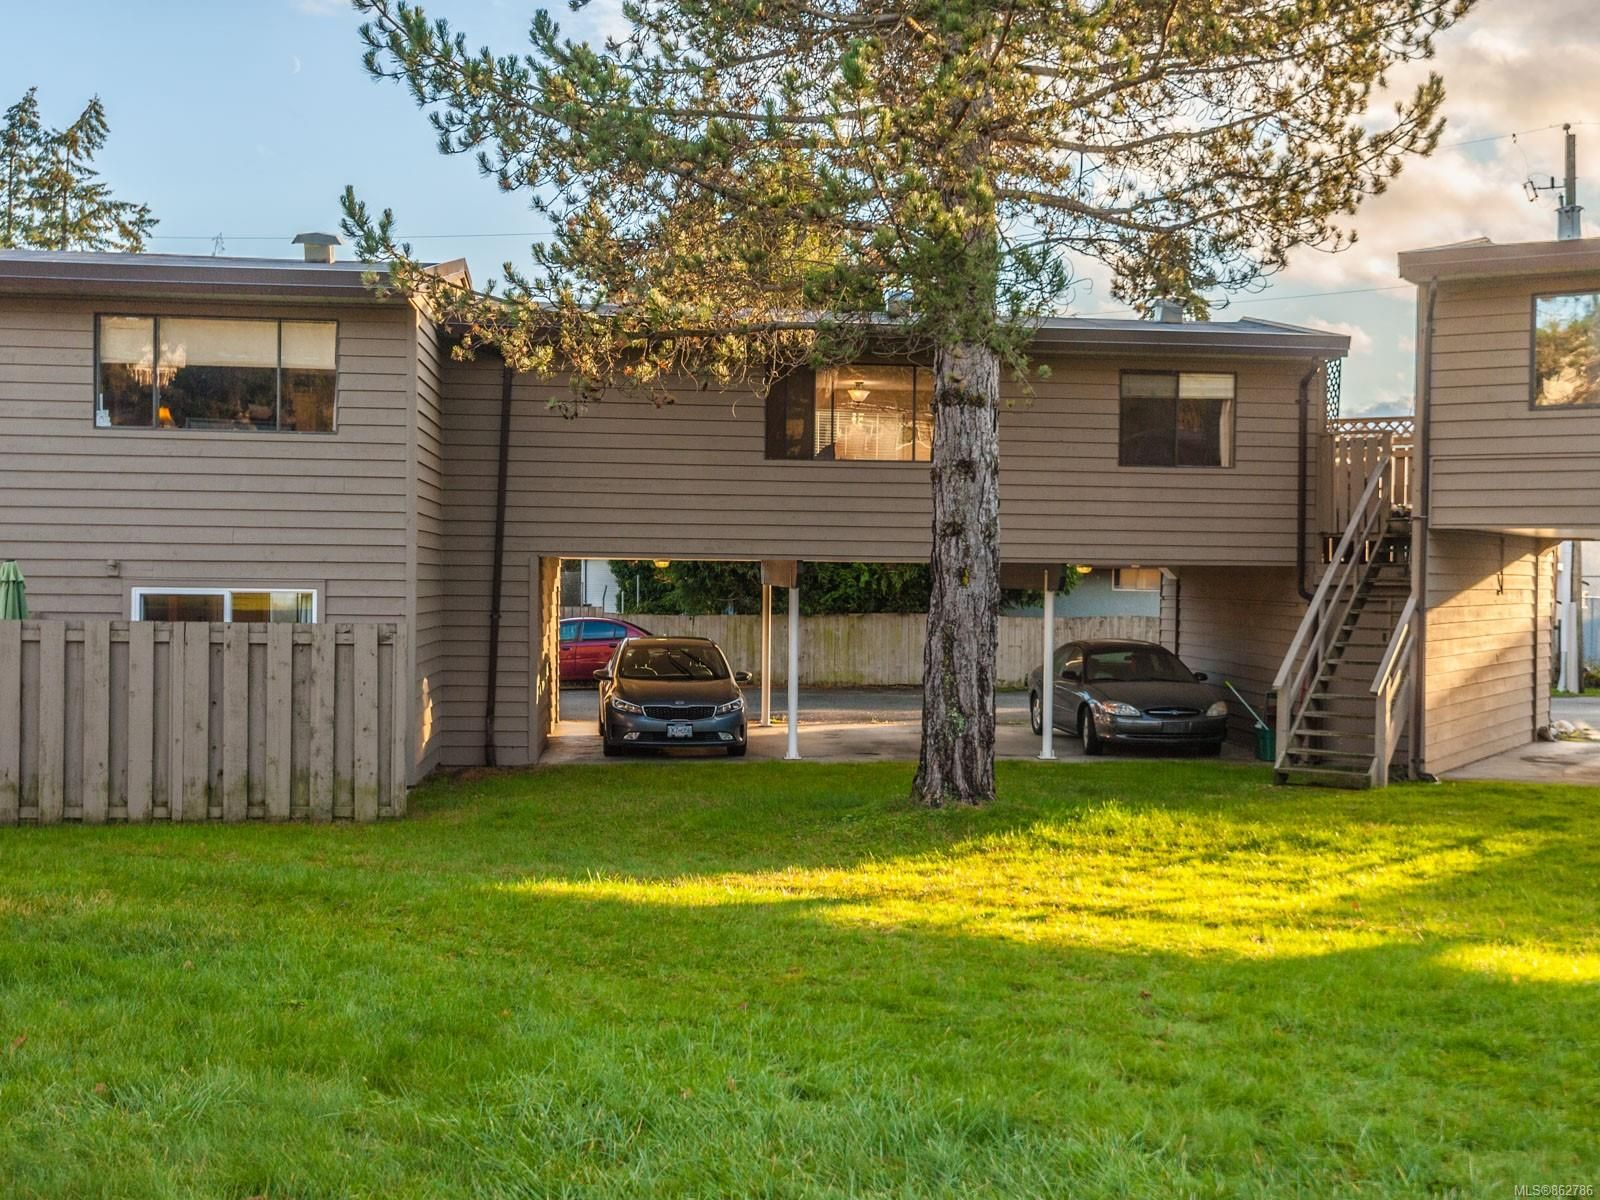 Main Photo: 31 25 Pryde Ave in : Na Central Nanaimo Row/Townhouse for sale (Nanaimo)  : MLS®# 862786